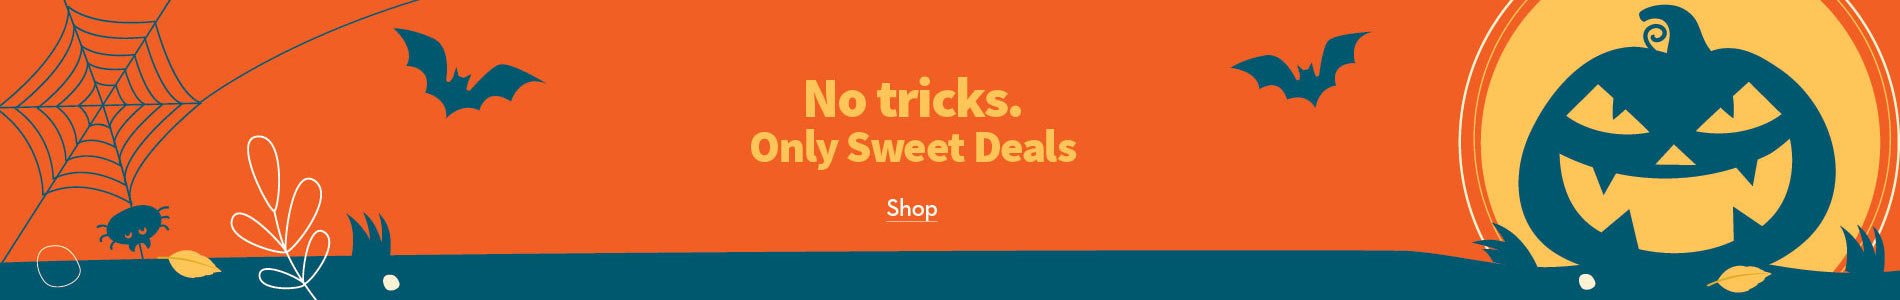 Halloween: No tricks. Only sweet deals.